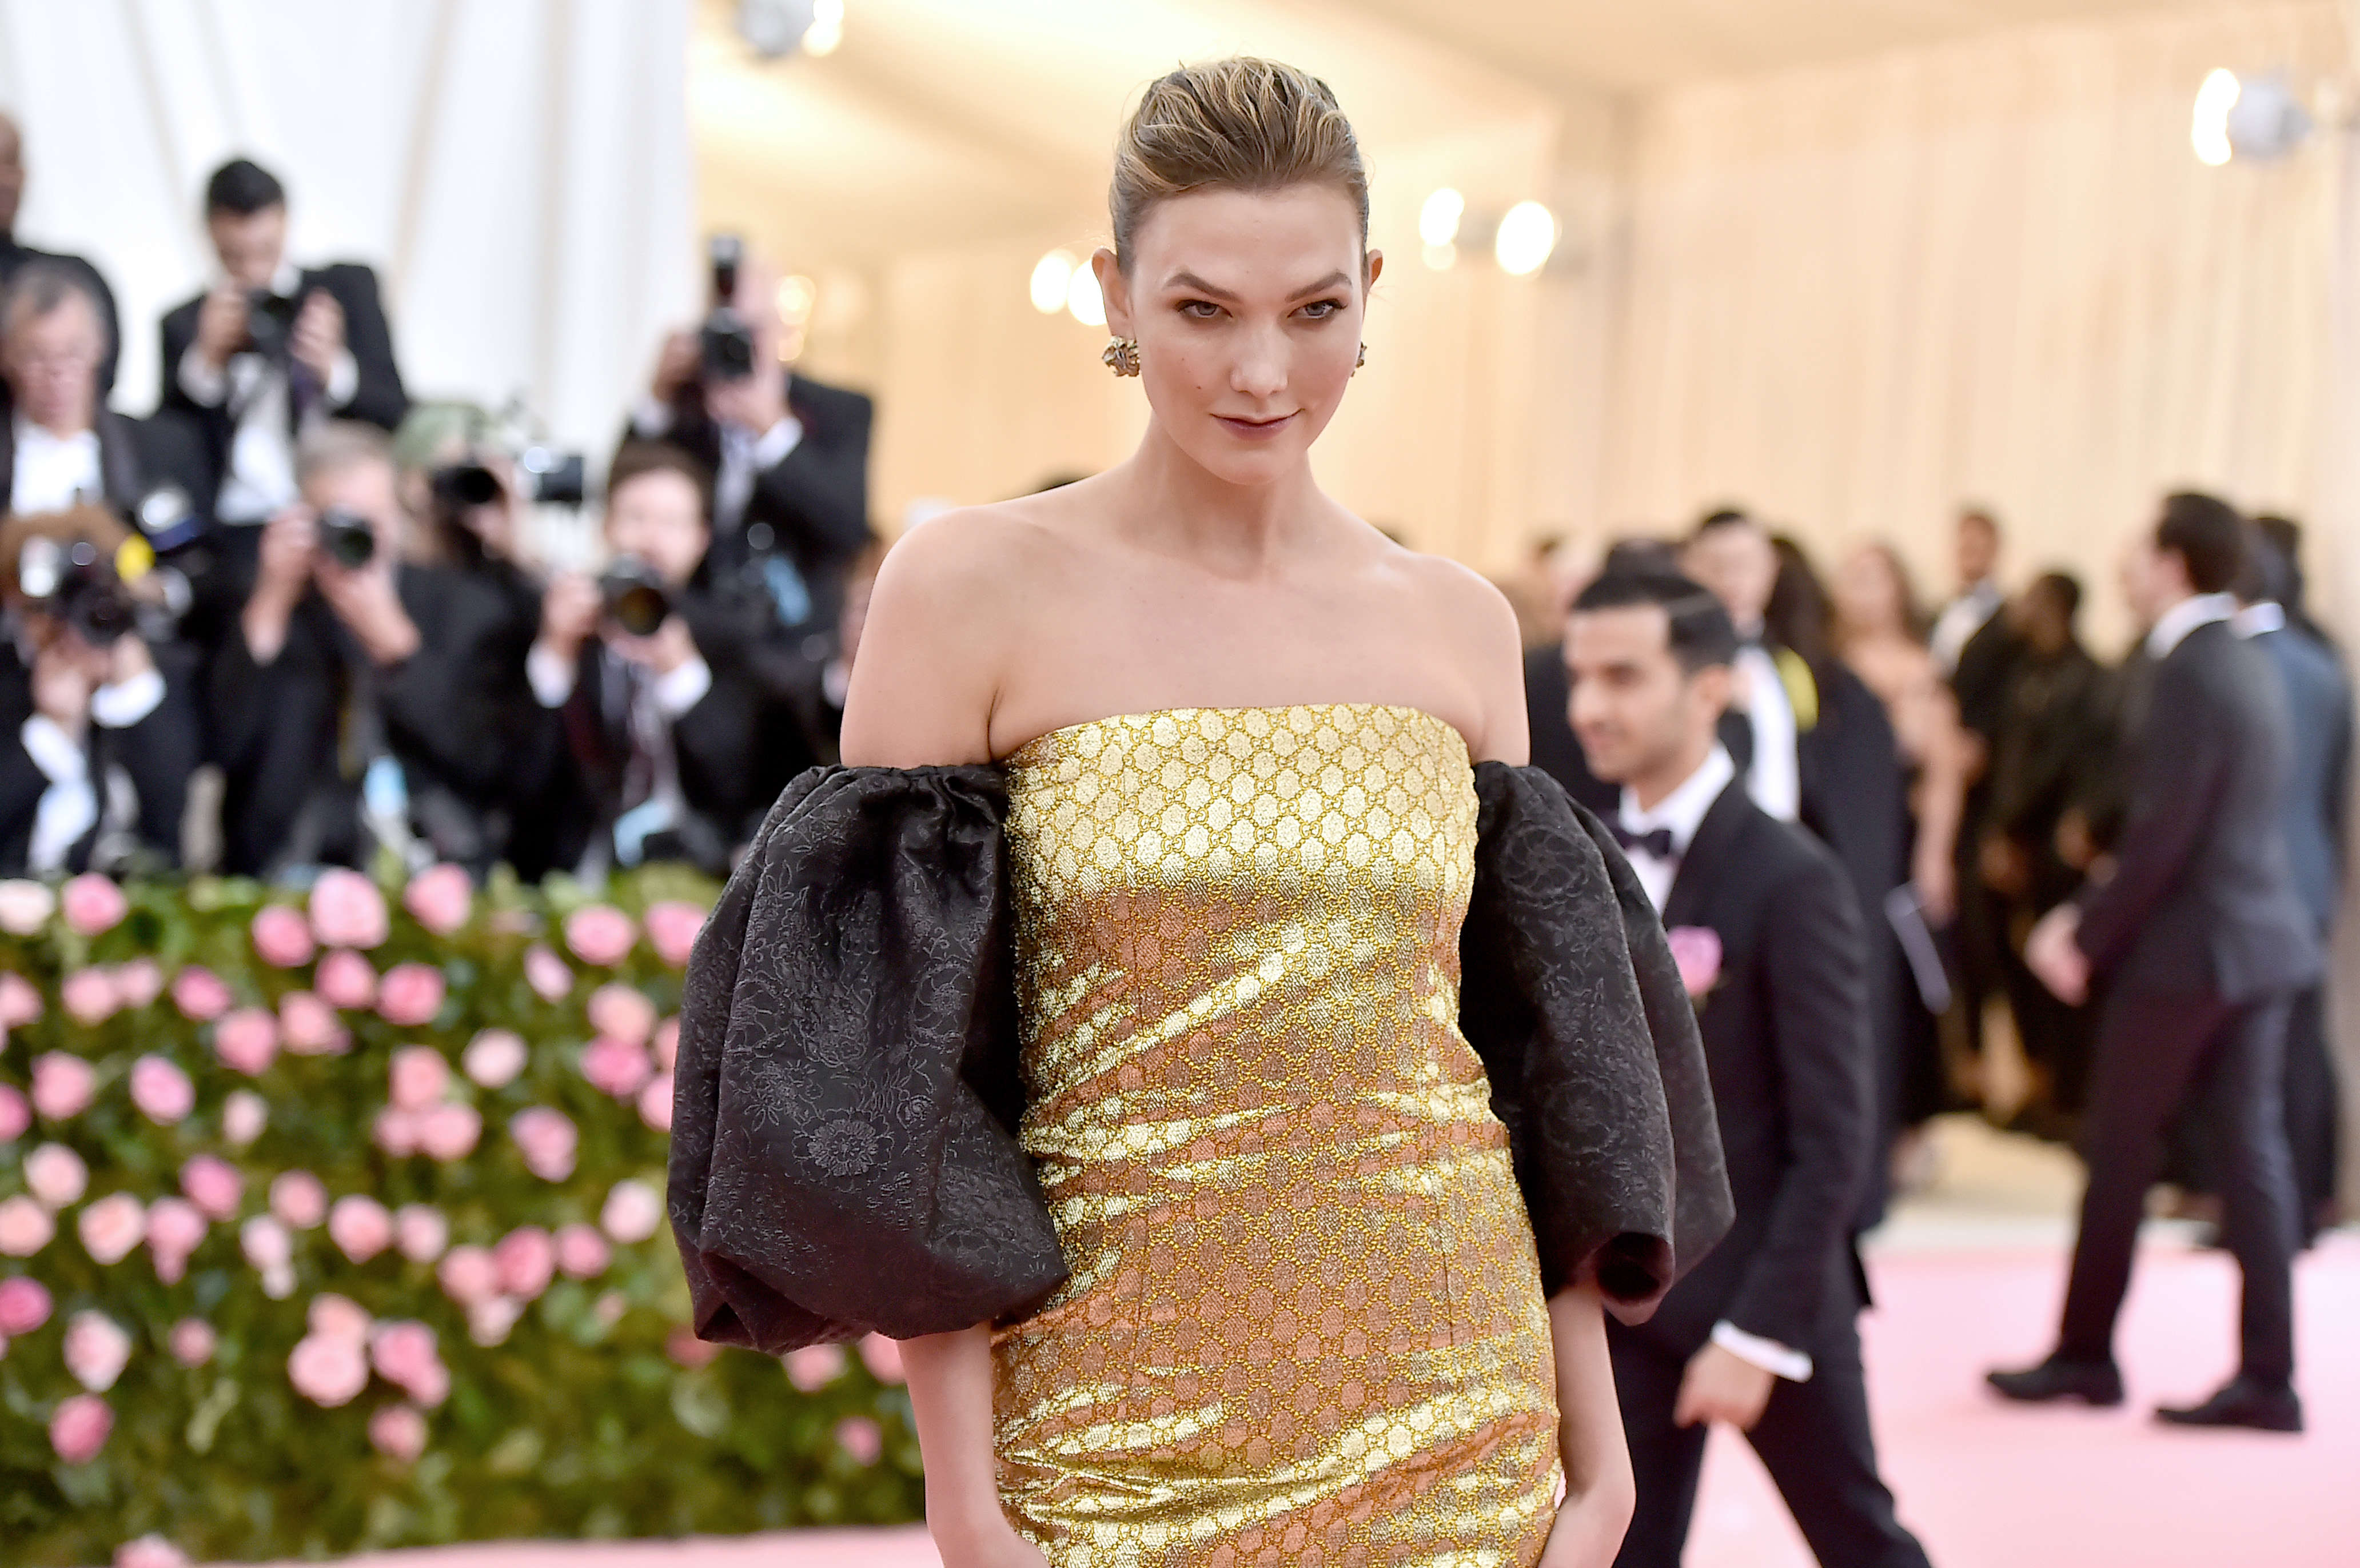 13a20e01c96 Twitter Is Still Dragging Karlie Kloss' Red Carpet Look: 'This Is the Met  Gala, Not a McDonald's Drive-Thru'